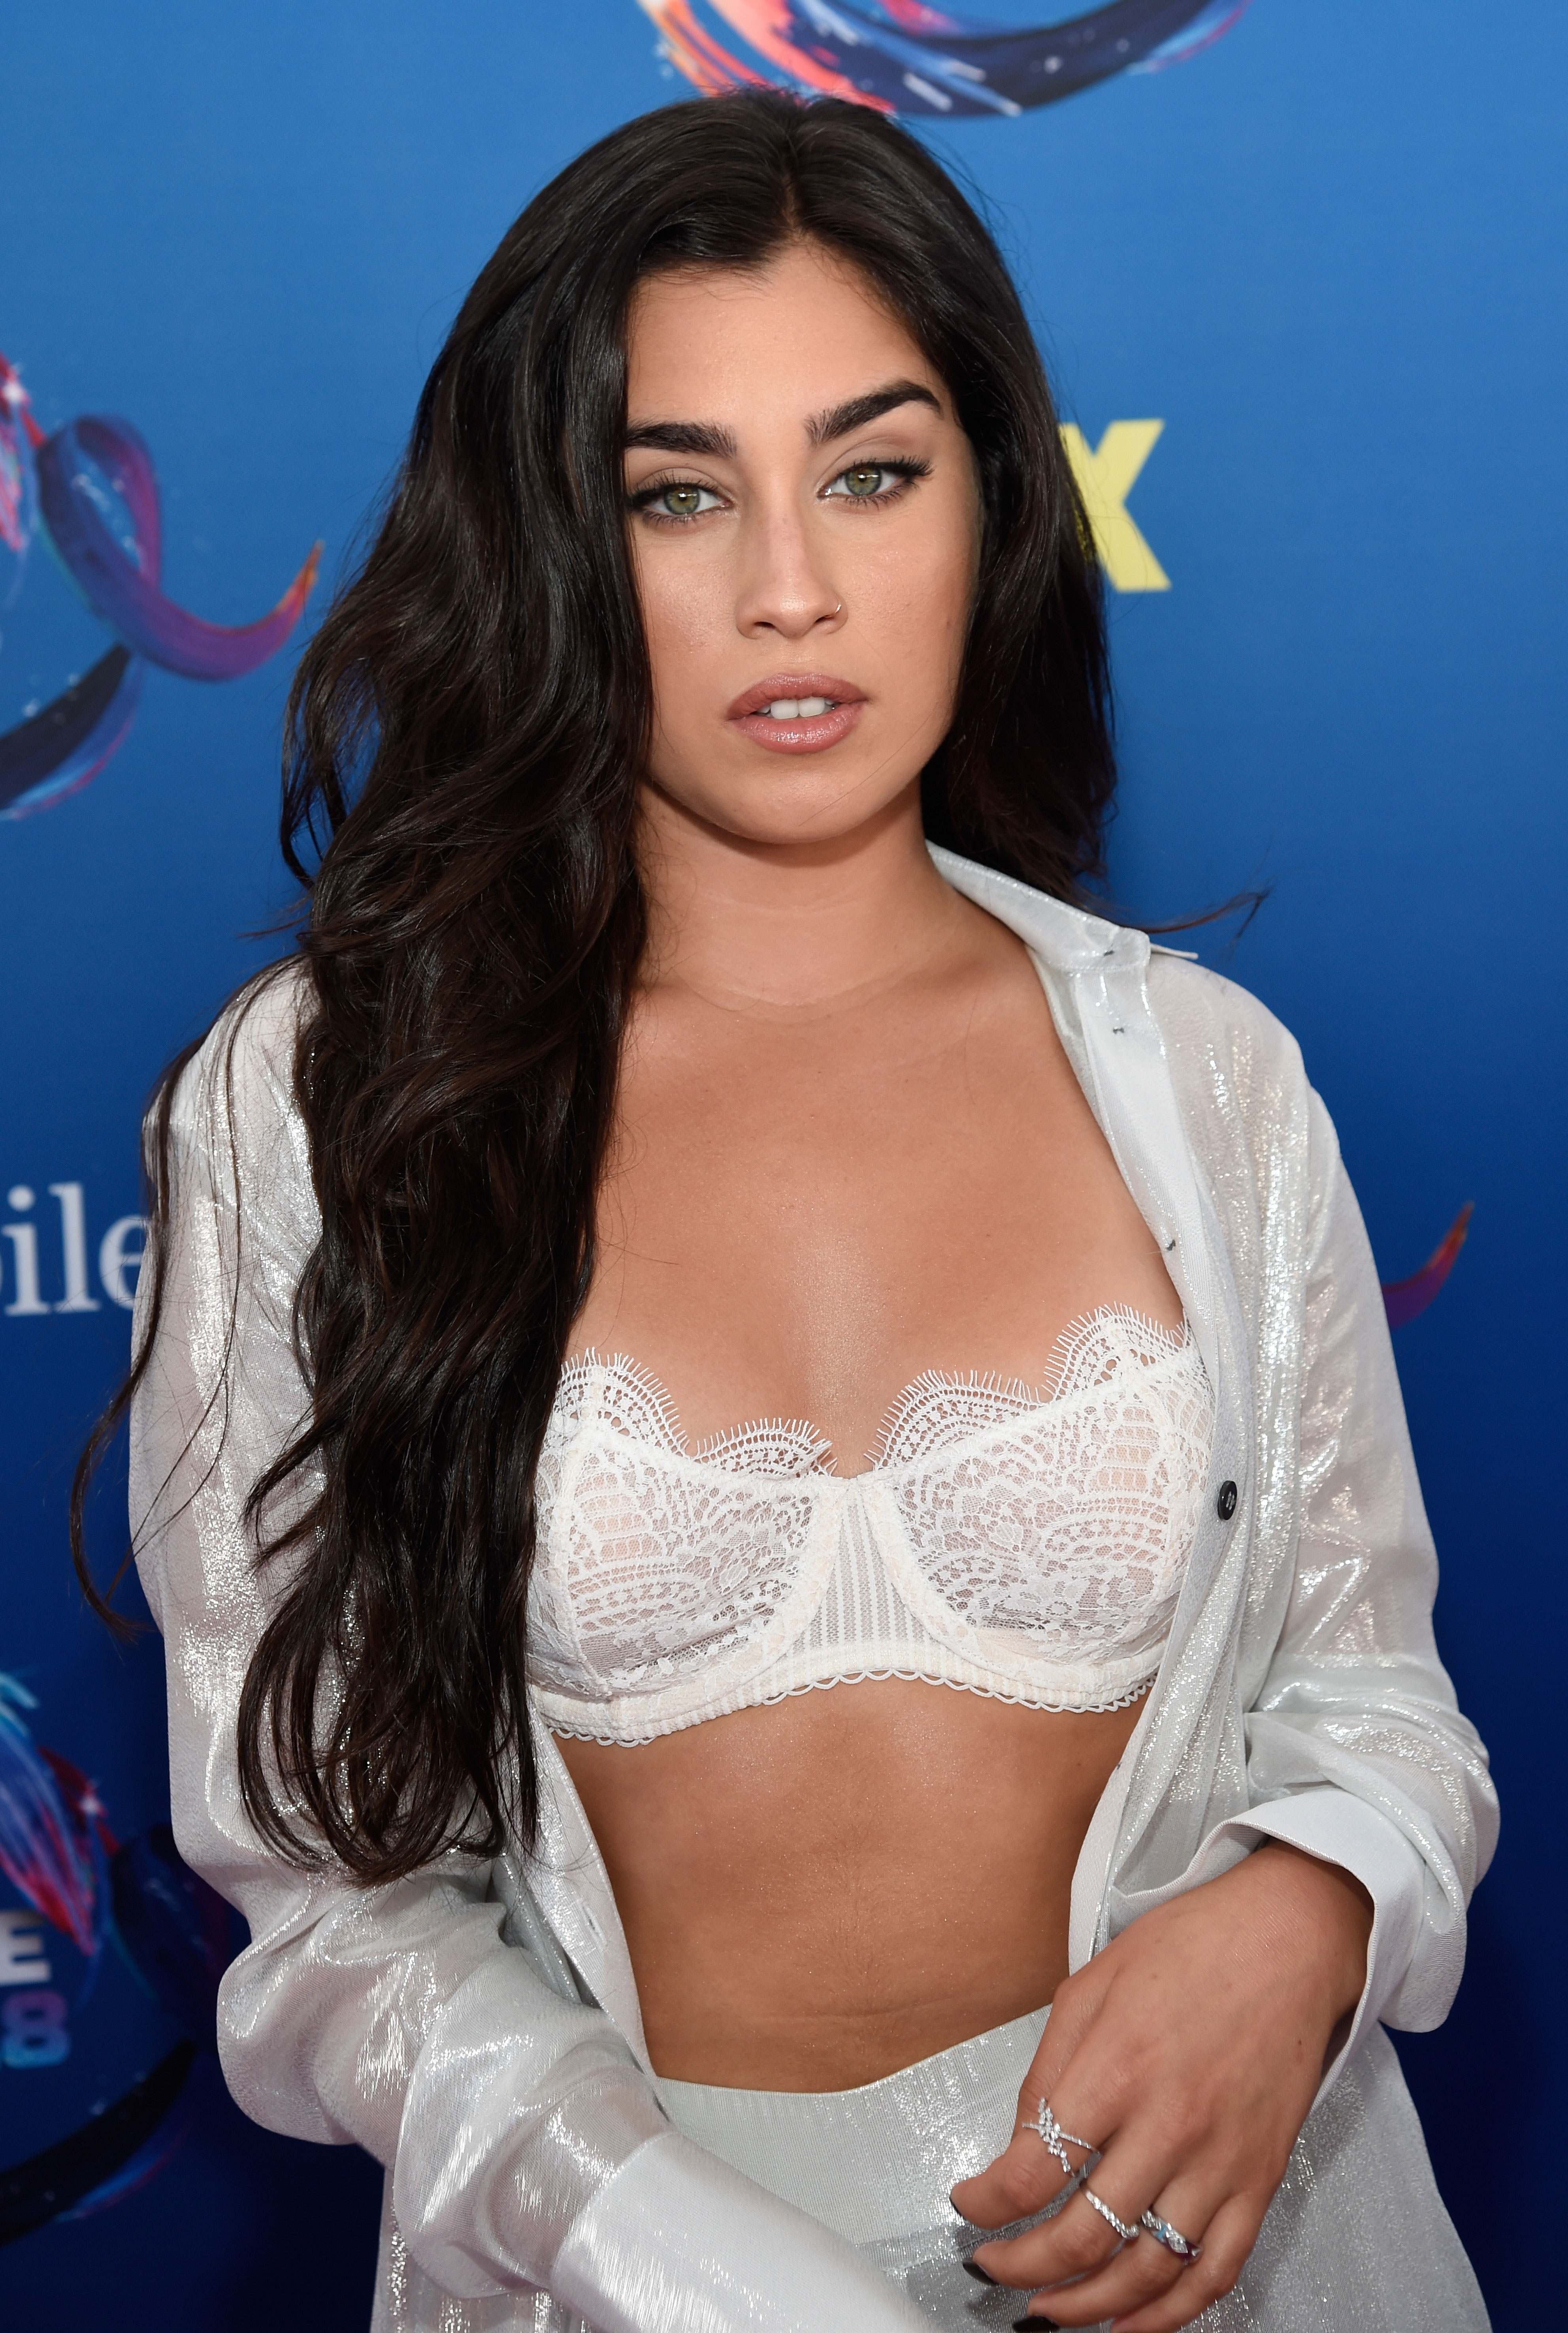 """Santa's Naughty or Nice List - """"I'm on both because I'm spicy but nice, you know what I mean? Sometimes I do some naughty s--t, but most of the time I'm very kind. I give grace and love everywhere I go,"""" the former Fifth Harmony singer tells Us . """"So I hope to be on both lists and get a couple cute things."""""""